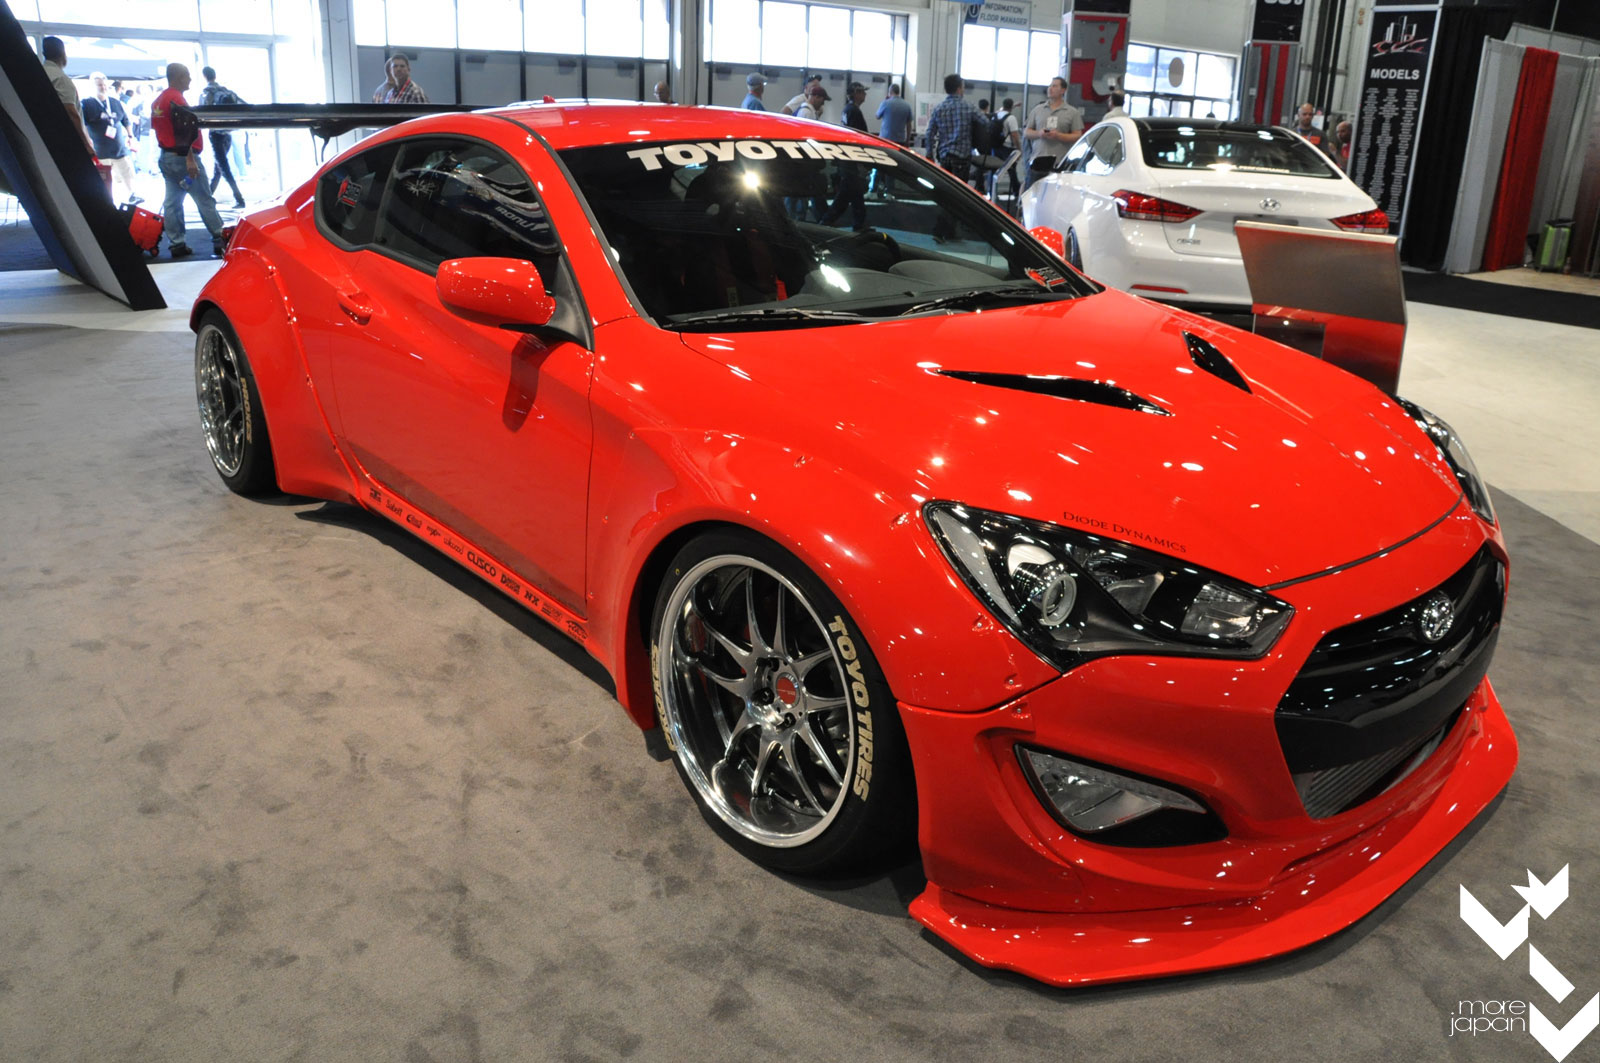 2014 Sema Spotlight Blood Type Racing S Rocket Bunny